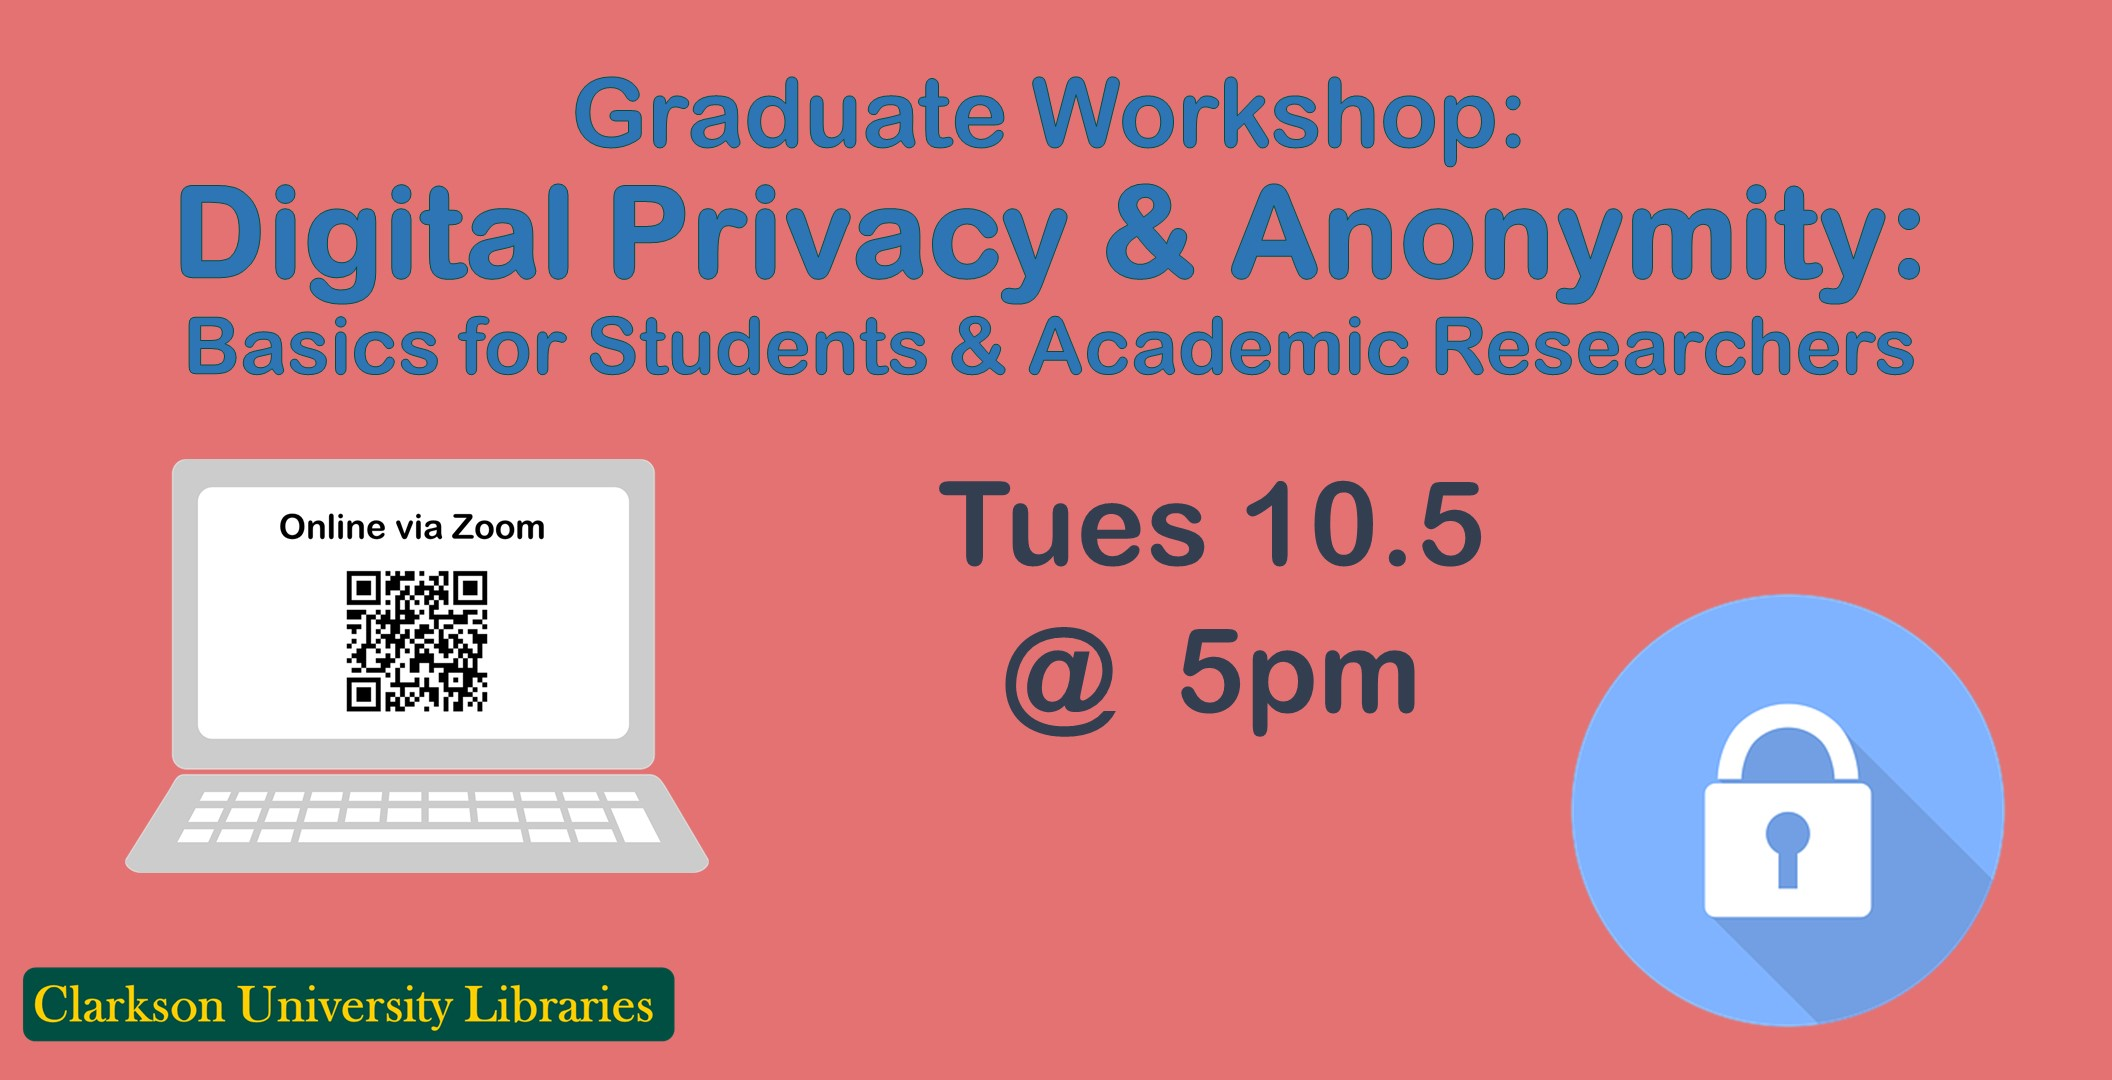 Graduate Workshop TODAY: Digital Privacy & Anonymity: Basics for Students & Academic Researchers